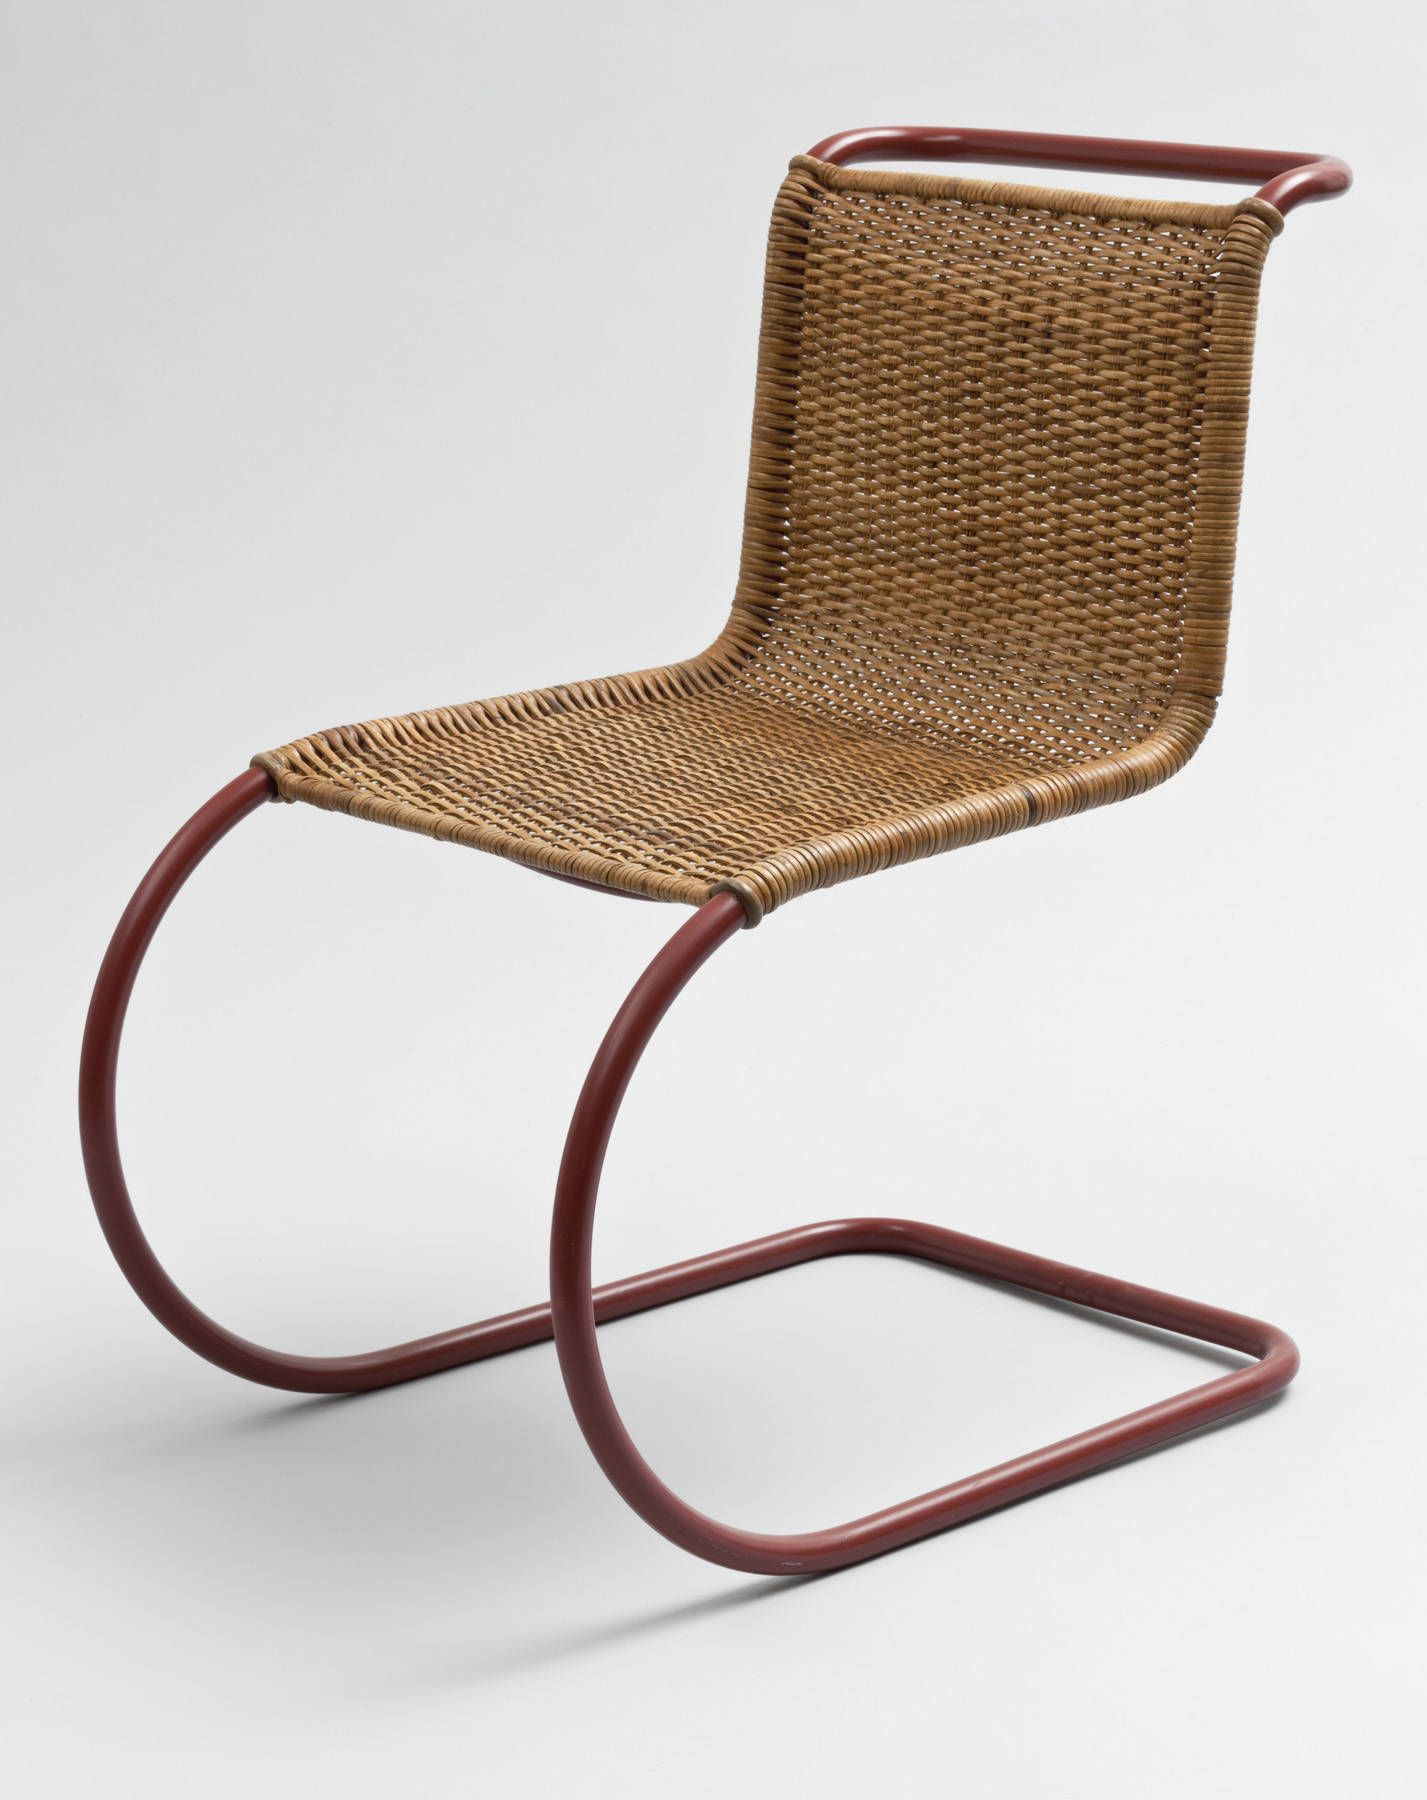 Side Chair MR 10 ca 1931 Ludwig Mies van der Rohe with Lilly